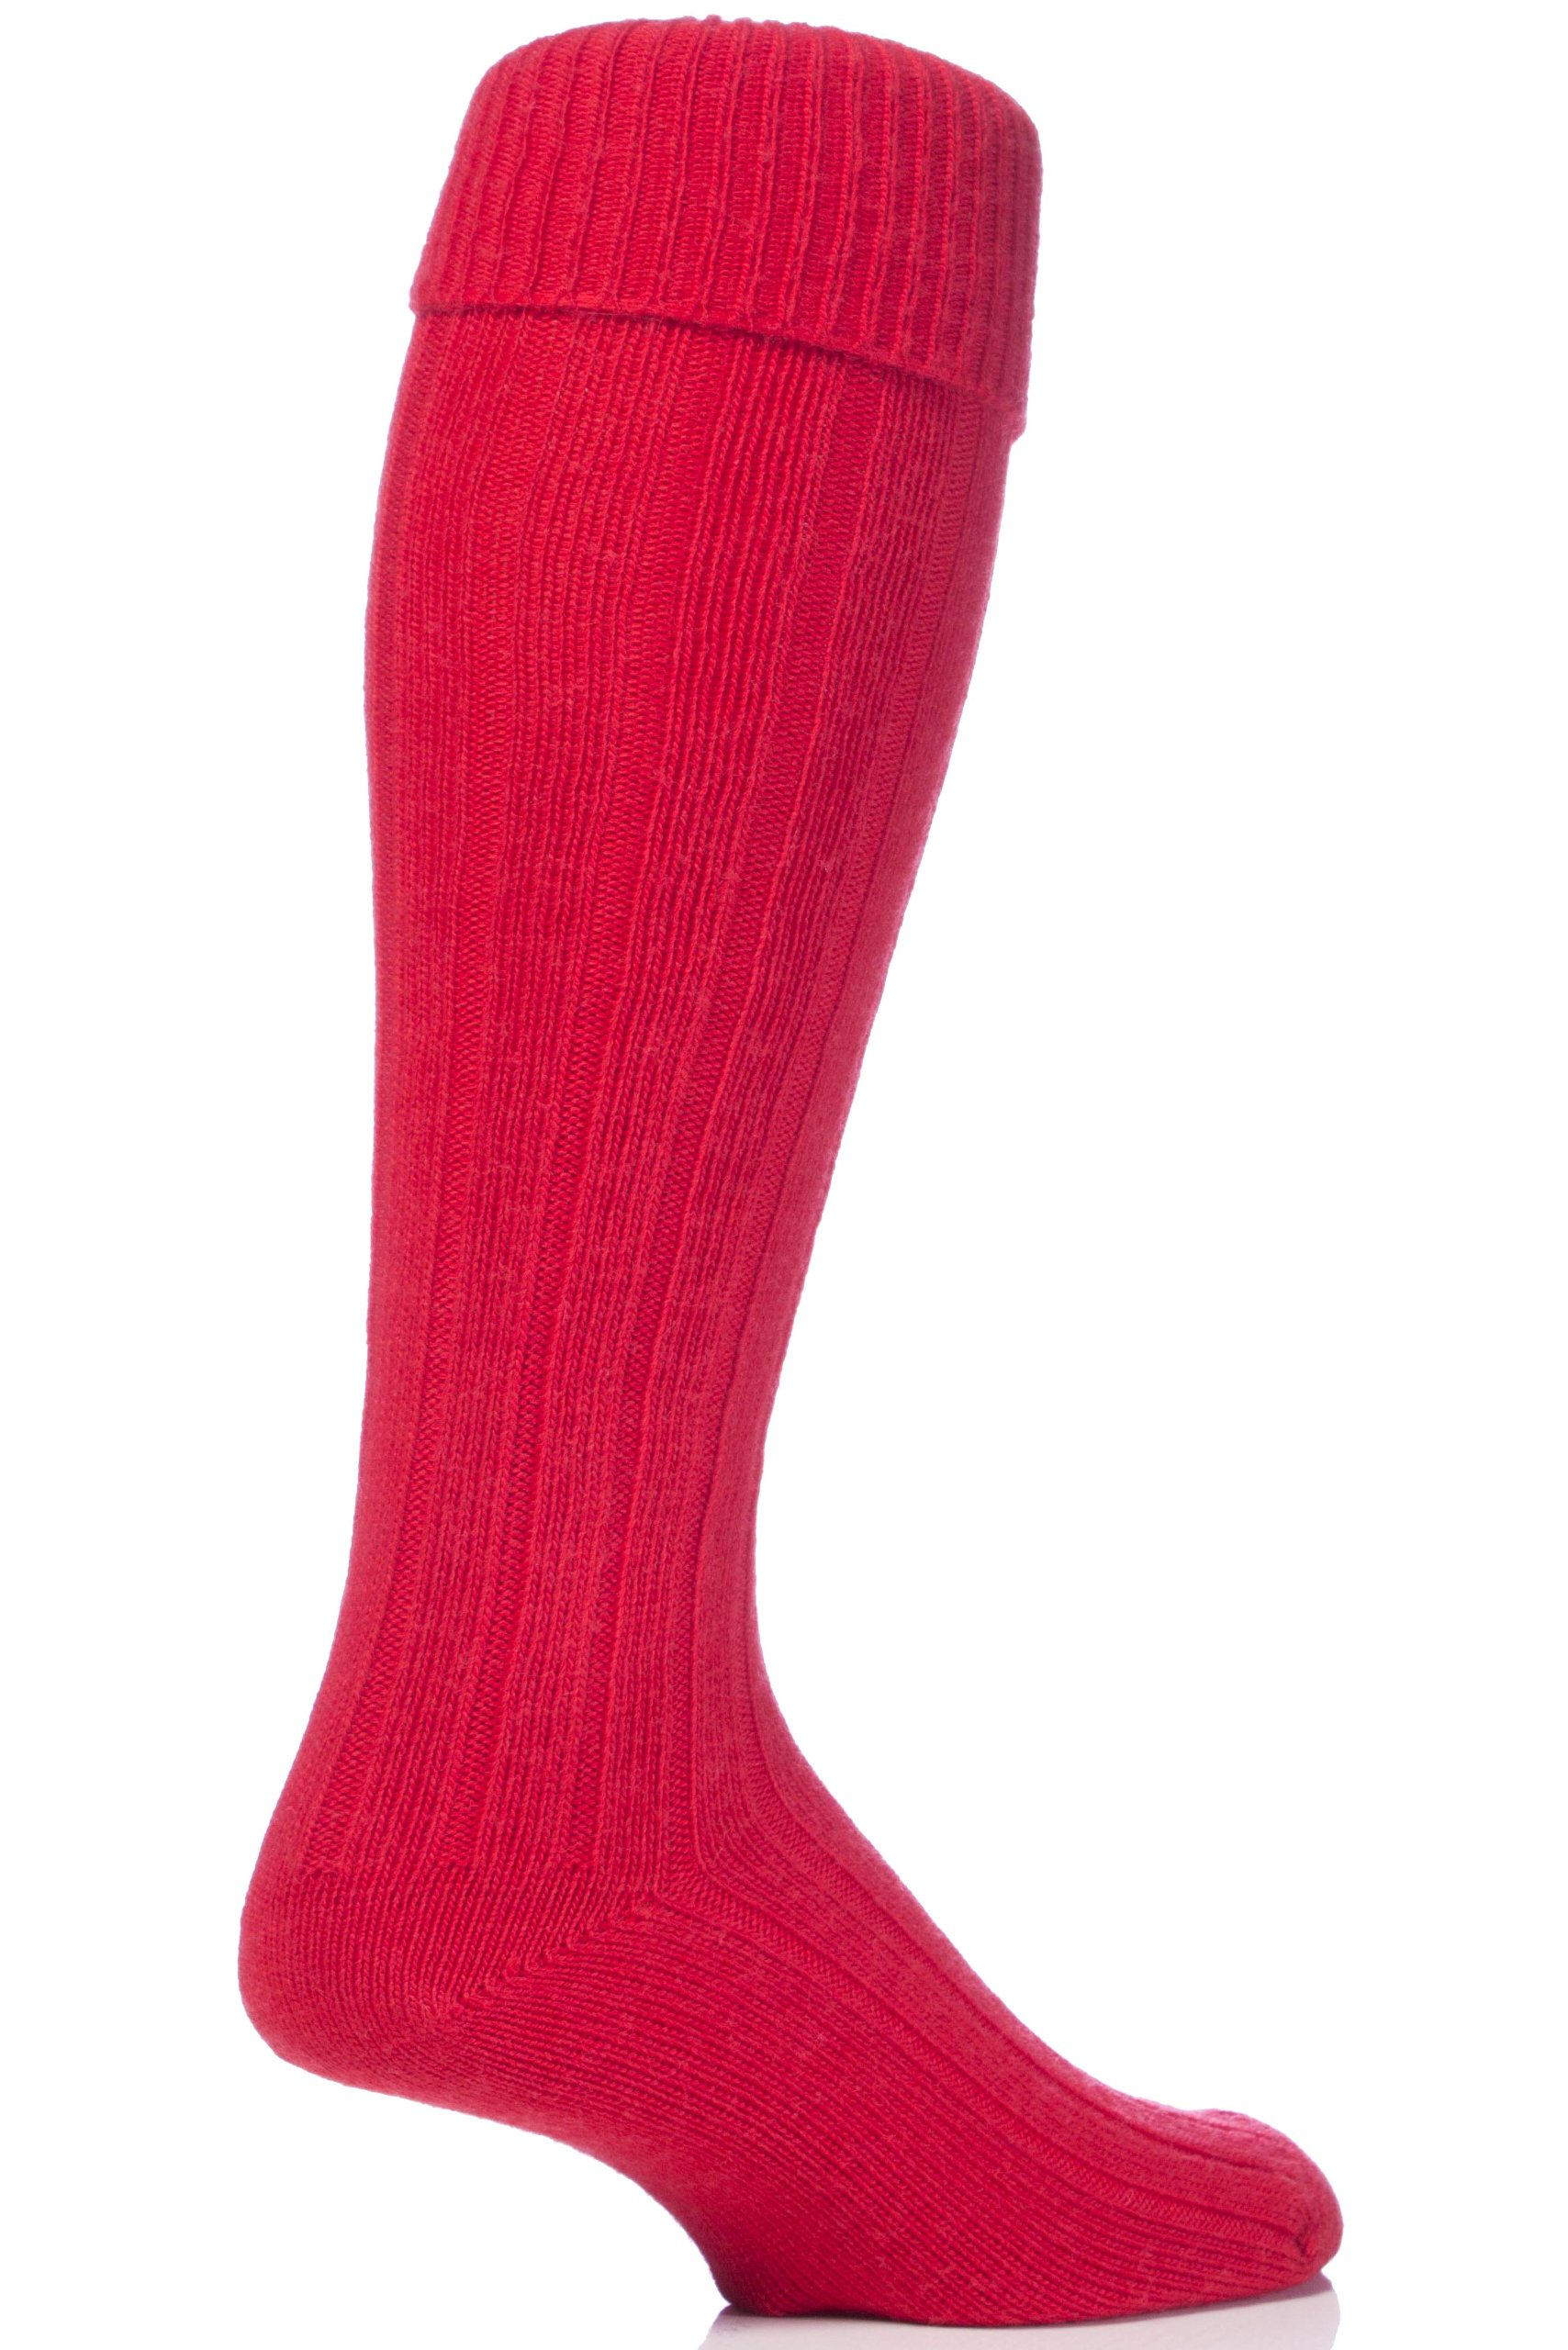 Glenmuir Men's 1 Pair Birkdale Golf Wool Knee High Socks with Turn Over Cuff 8-11 Red by Glenmuir